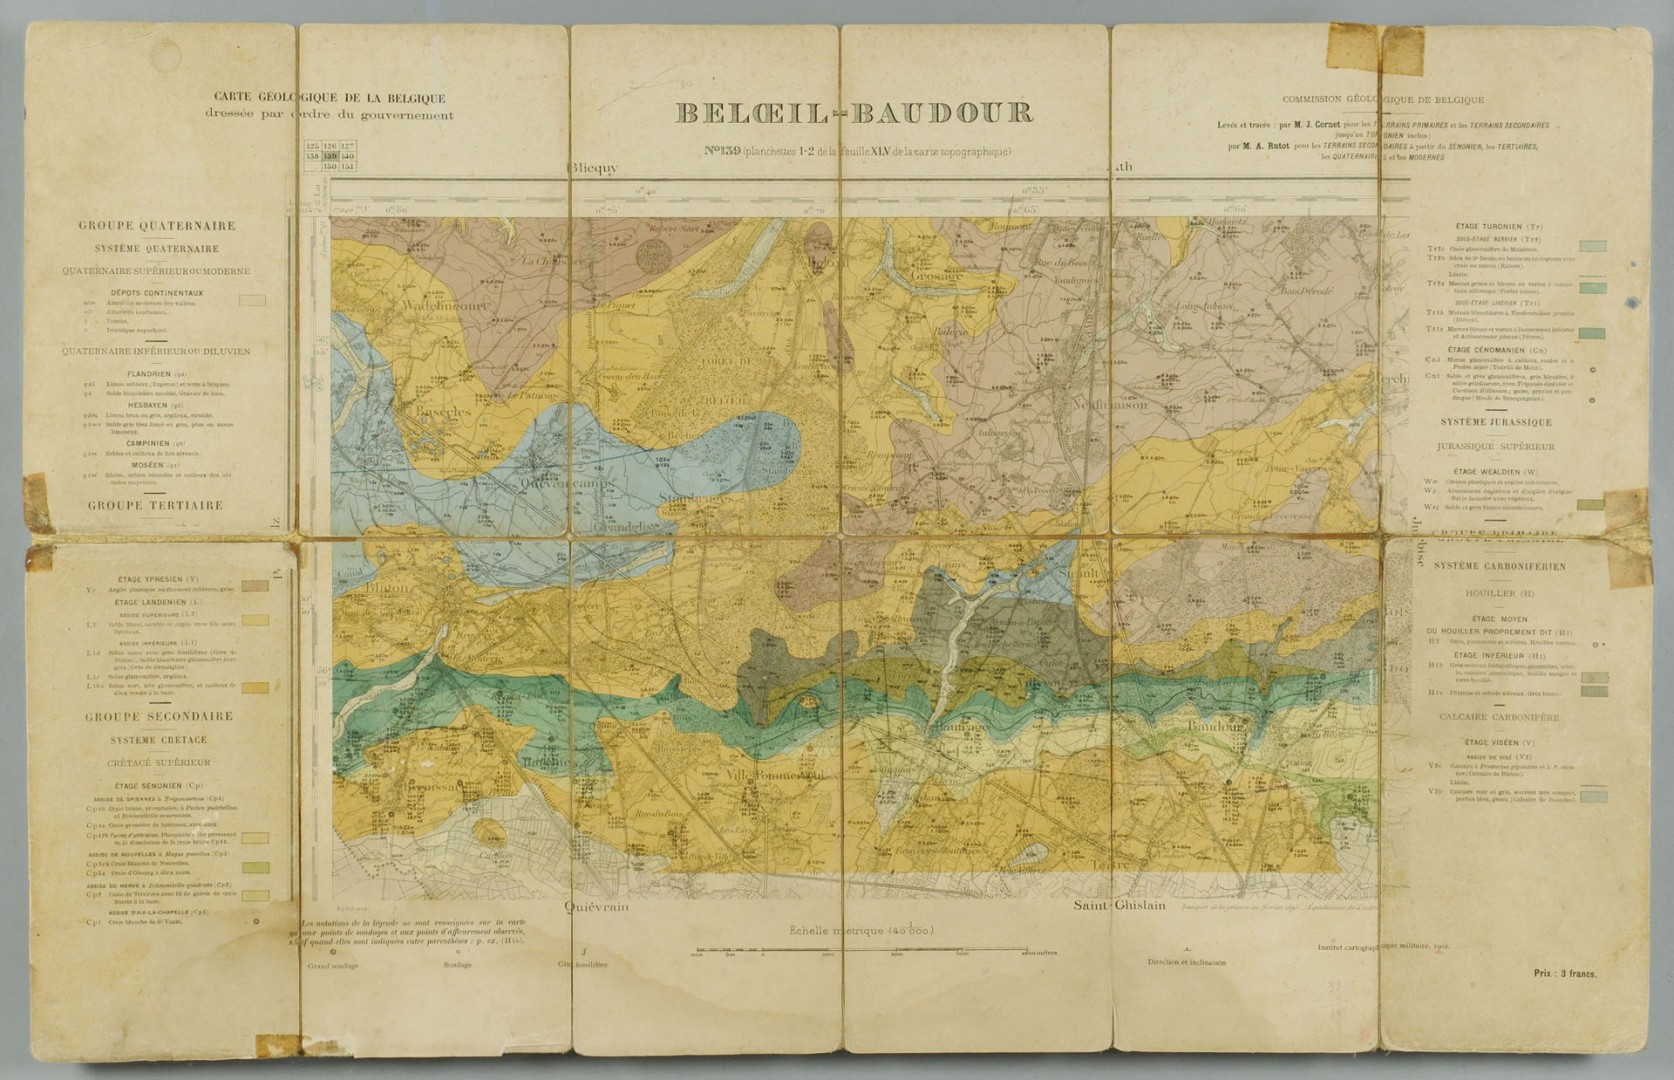 6 framed topography maps of Belgium, early 20th c